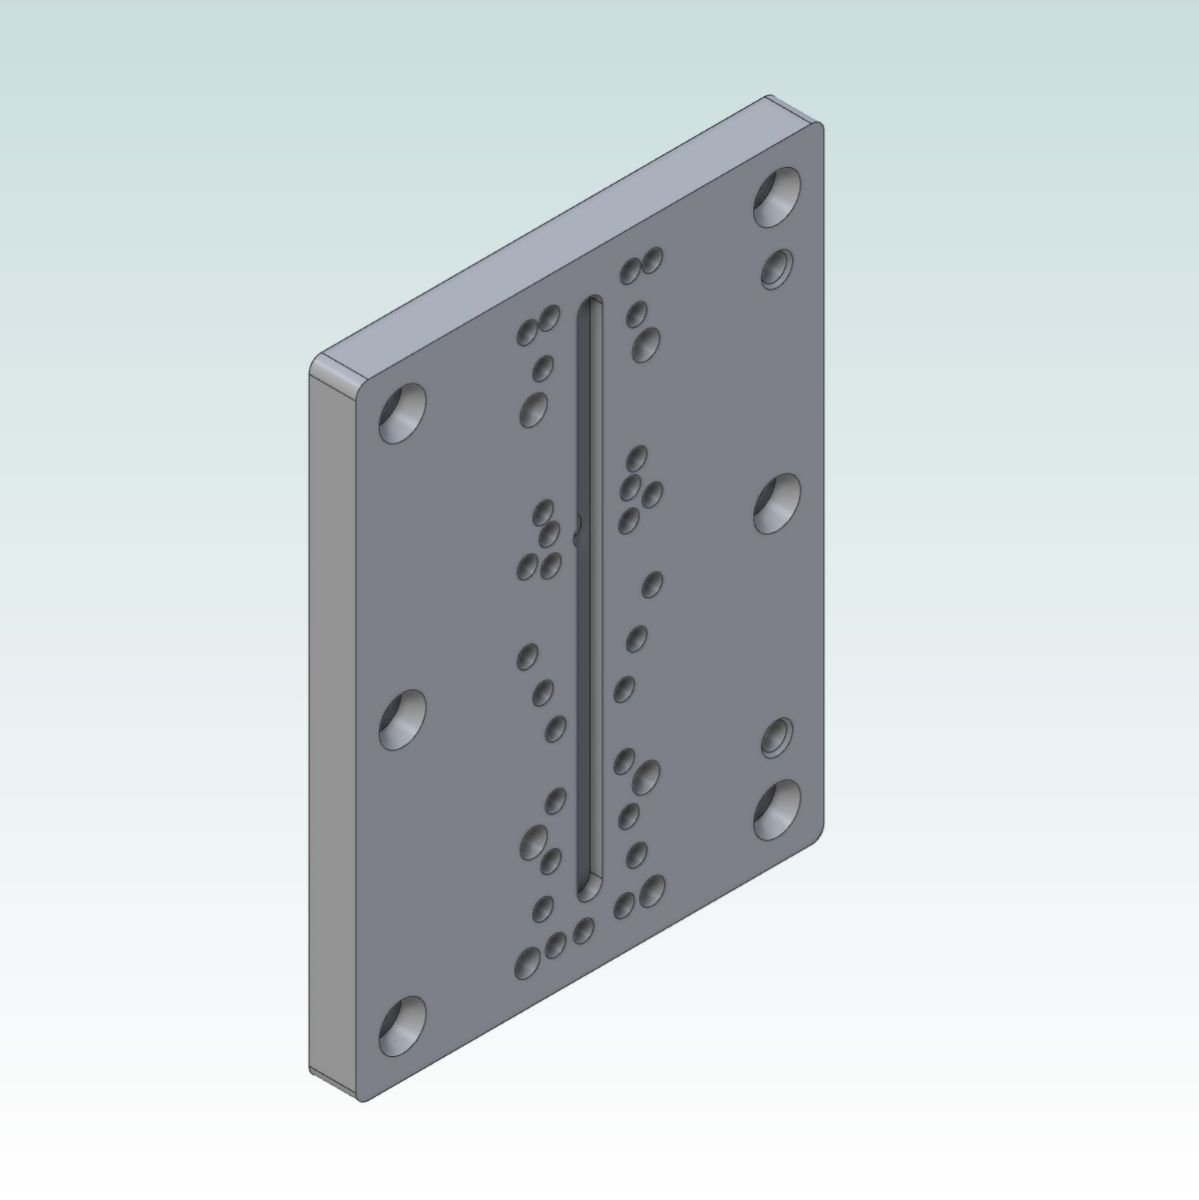 8991 teknomotor mountplate v4 for 40x160 profile